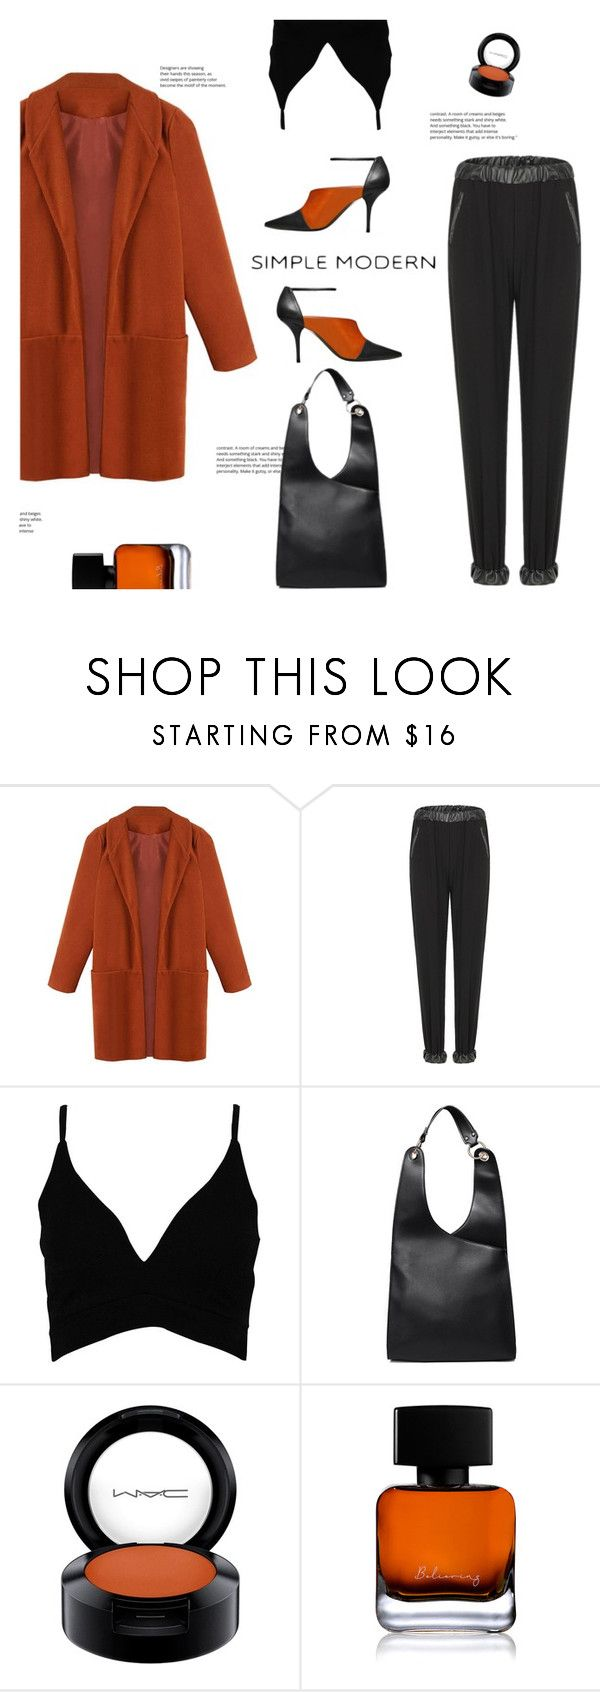 """""""yoins 40"""" by meyli-meyli ❤ liked on Polyvore featuring Boohoo, MAC Cosmetics, The Collection by Phuong Dang, Supra, yoins, yoinscollection and loveyoins"""